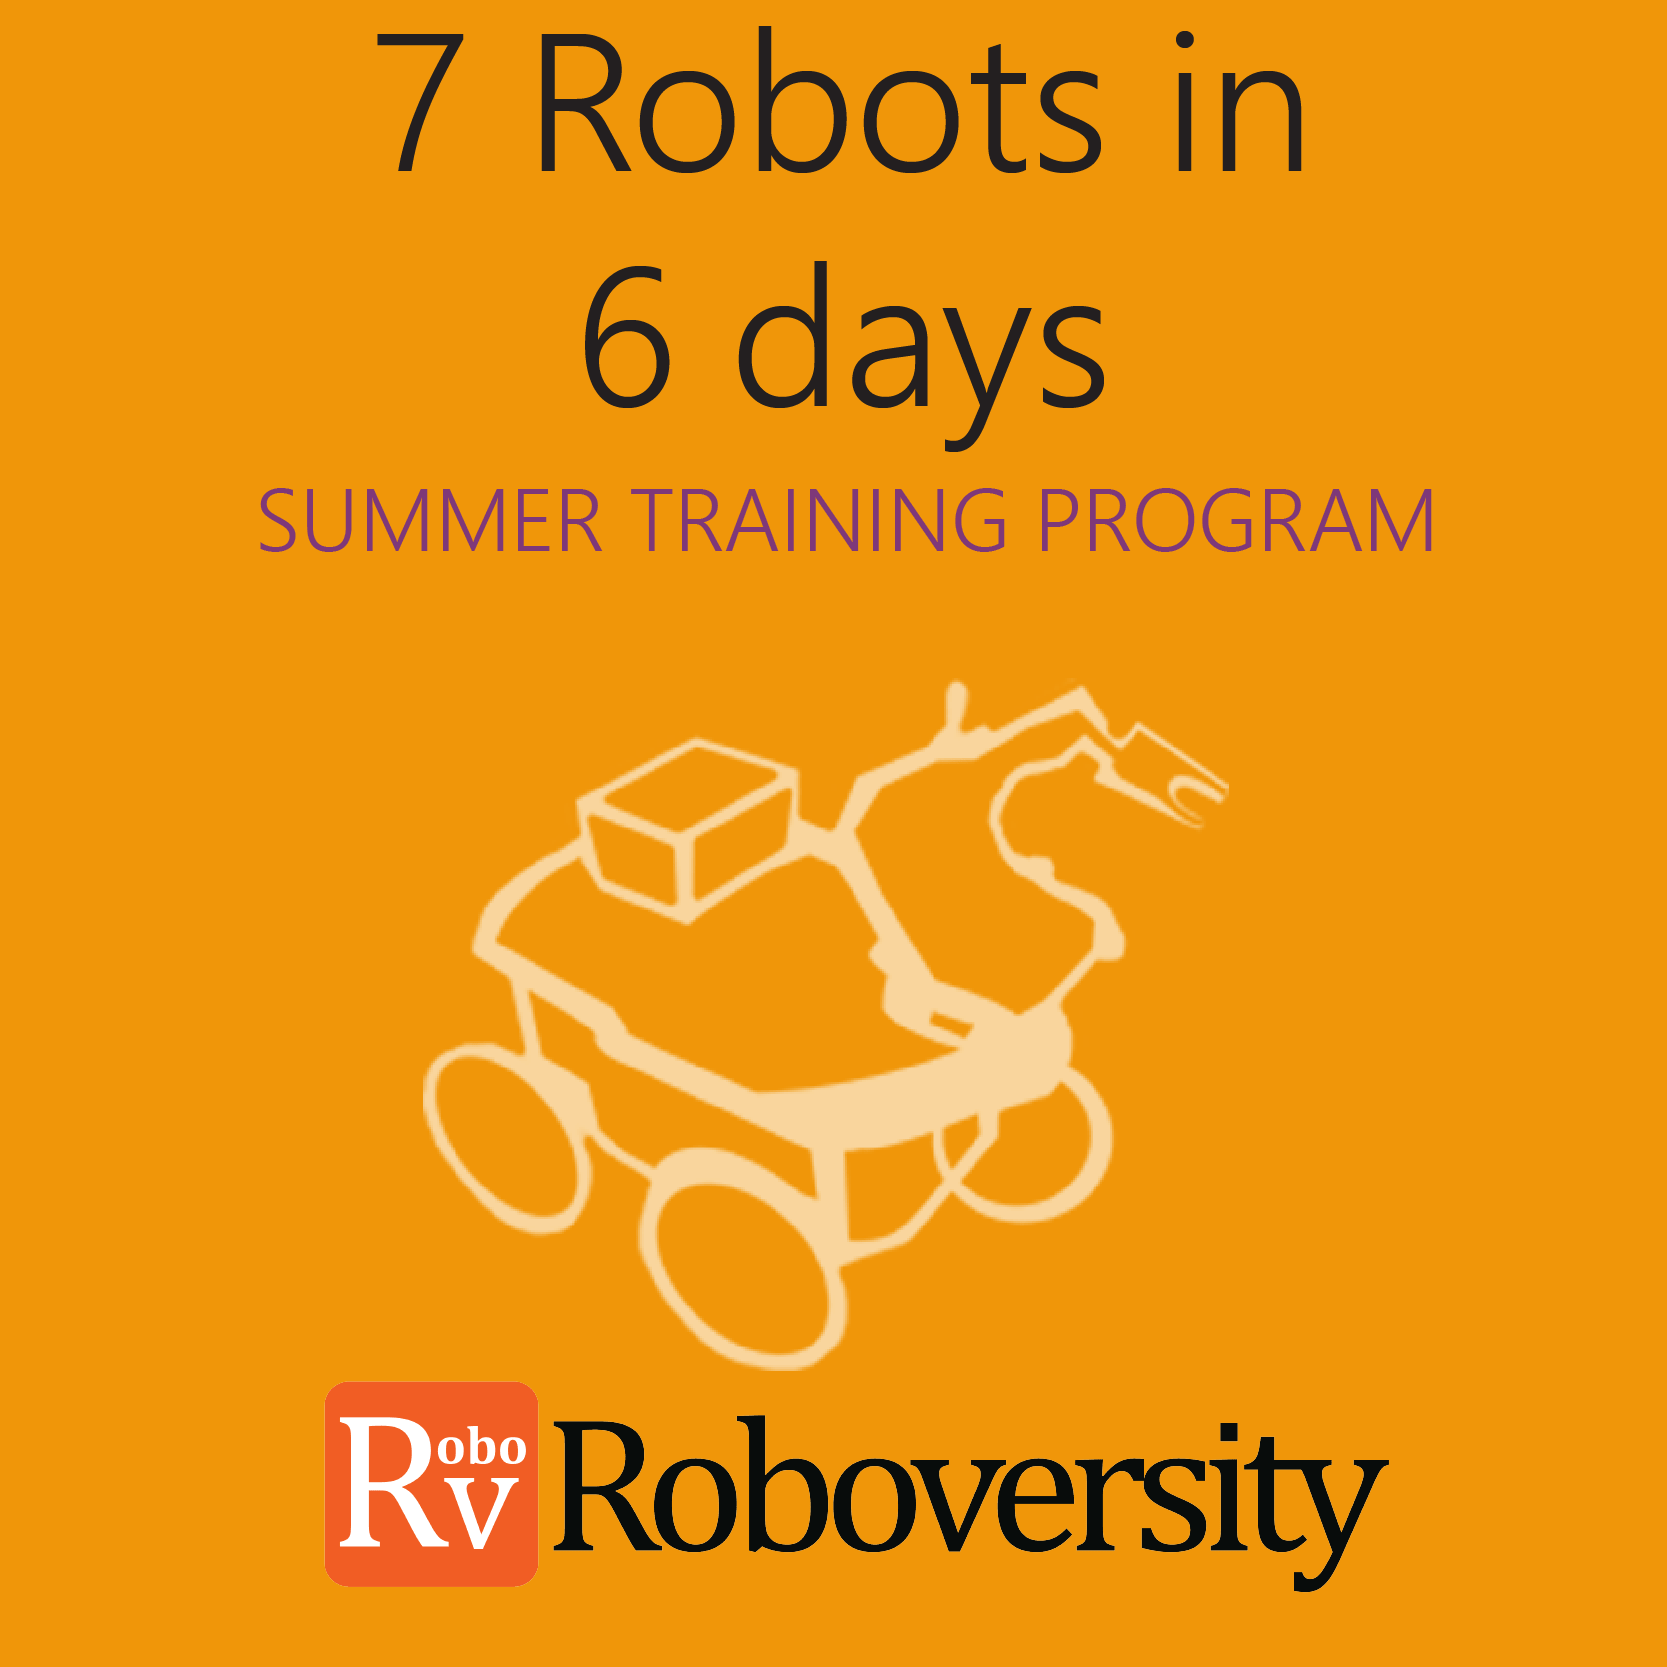 Summer Training Program in Robotics - 7 Robots in 6 Days  at Gateforum, Vishal Mega Mart, VIP Road